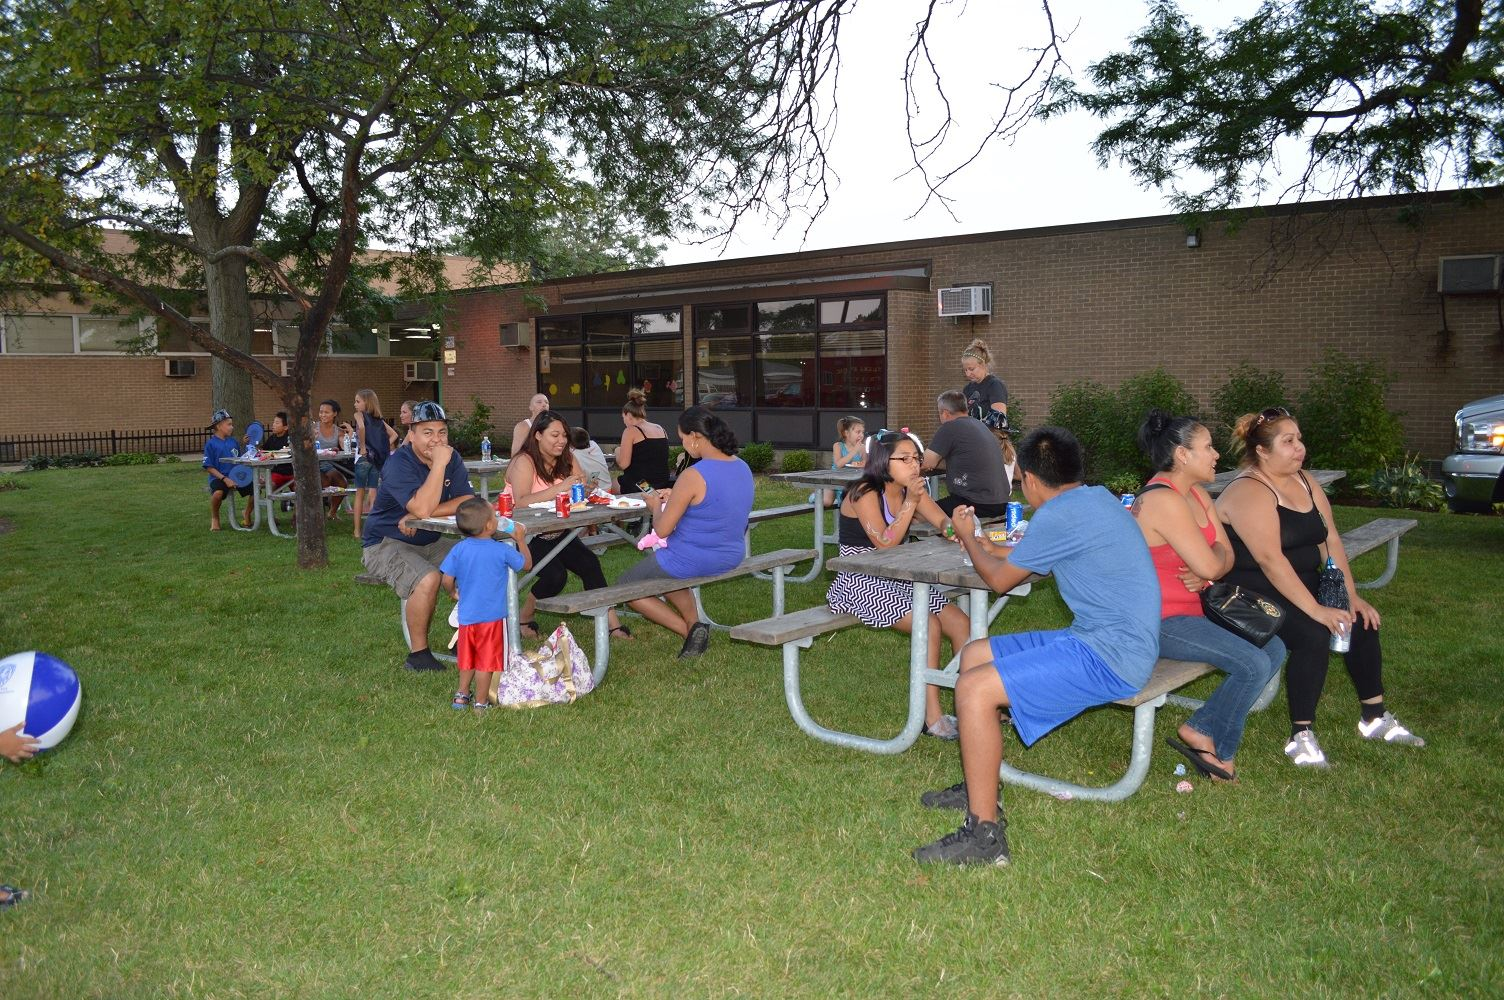 Community members enjoy food at picnic tables during a National Night Out event at the Iowa Community Center, Aug. 2.